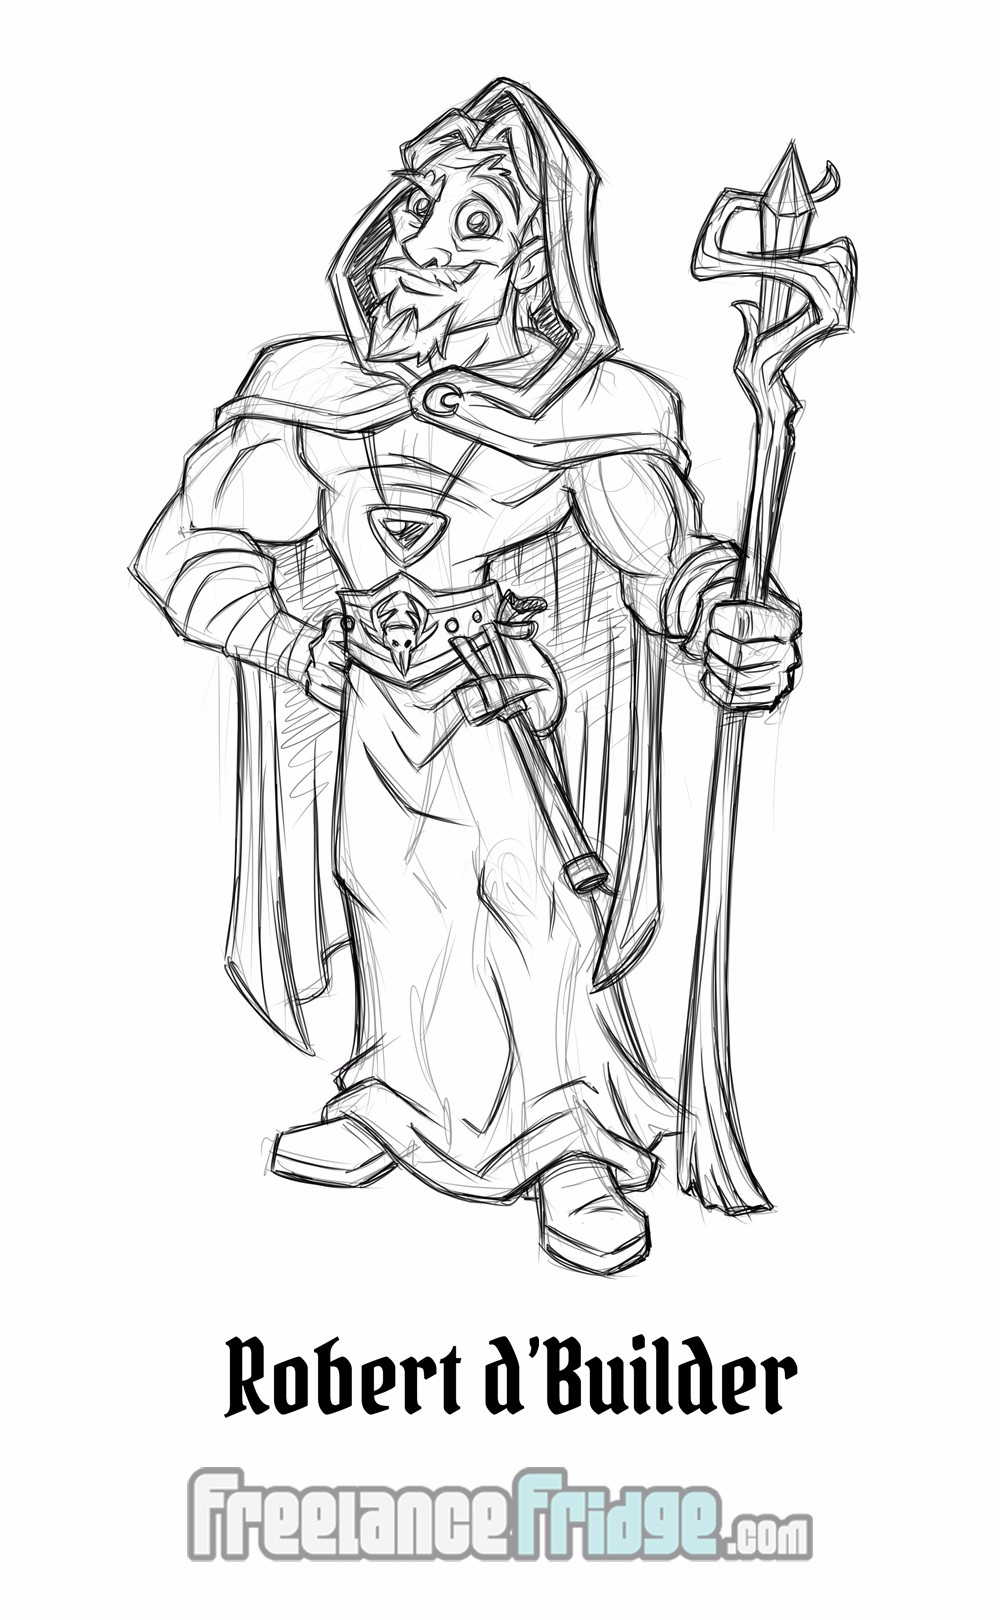 Fantasy Fairy Tale Character Sketch Concept Wizard Robert for Comic Book